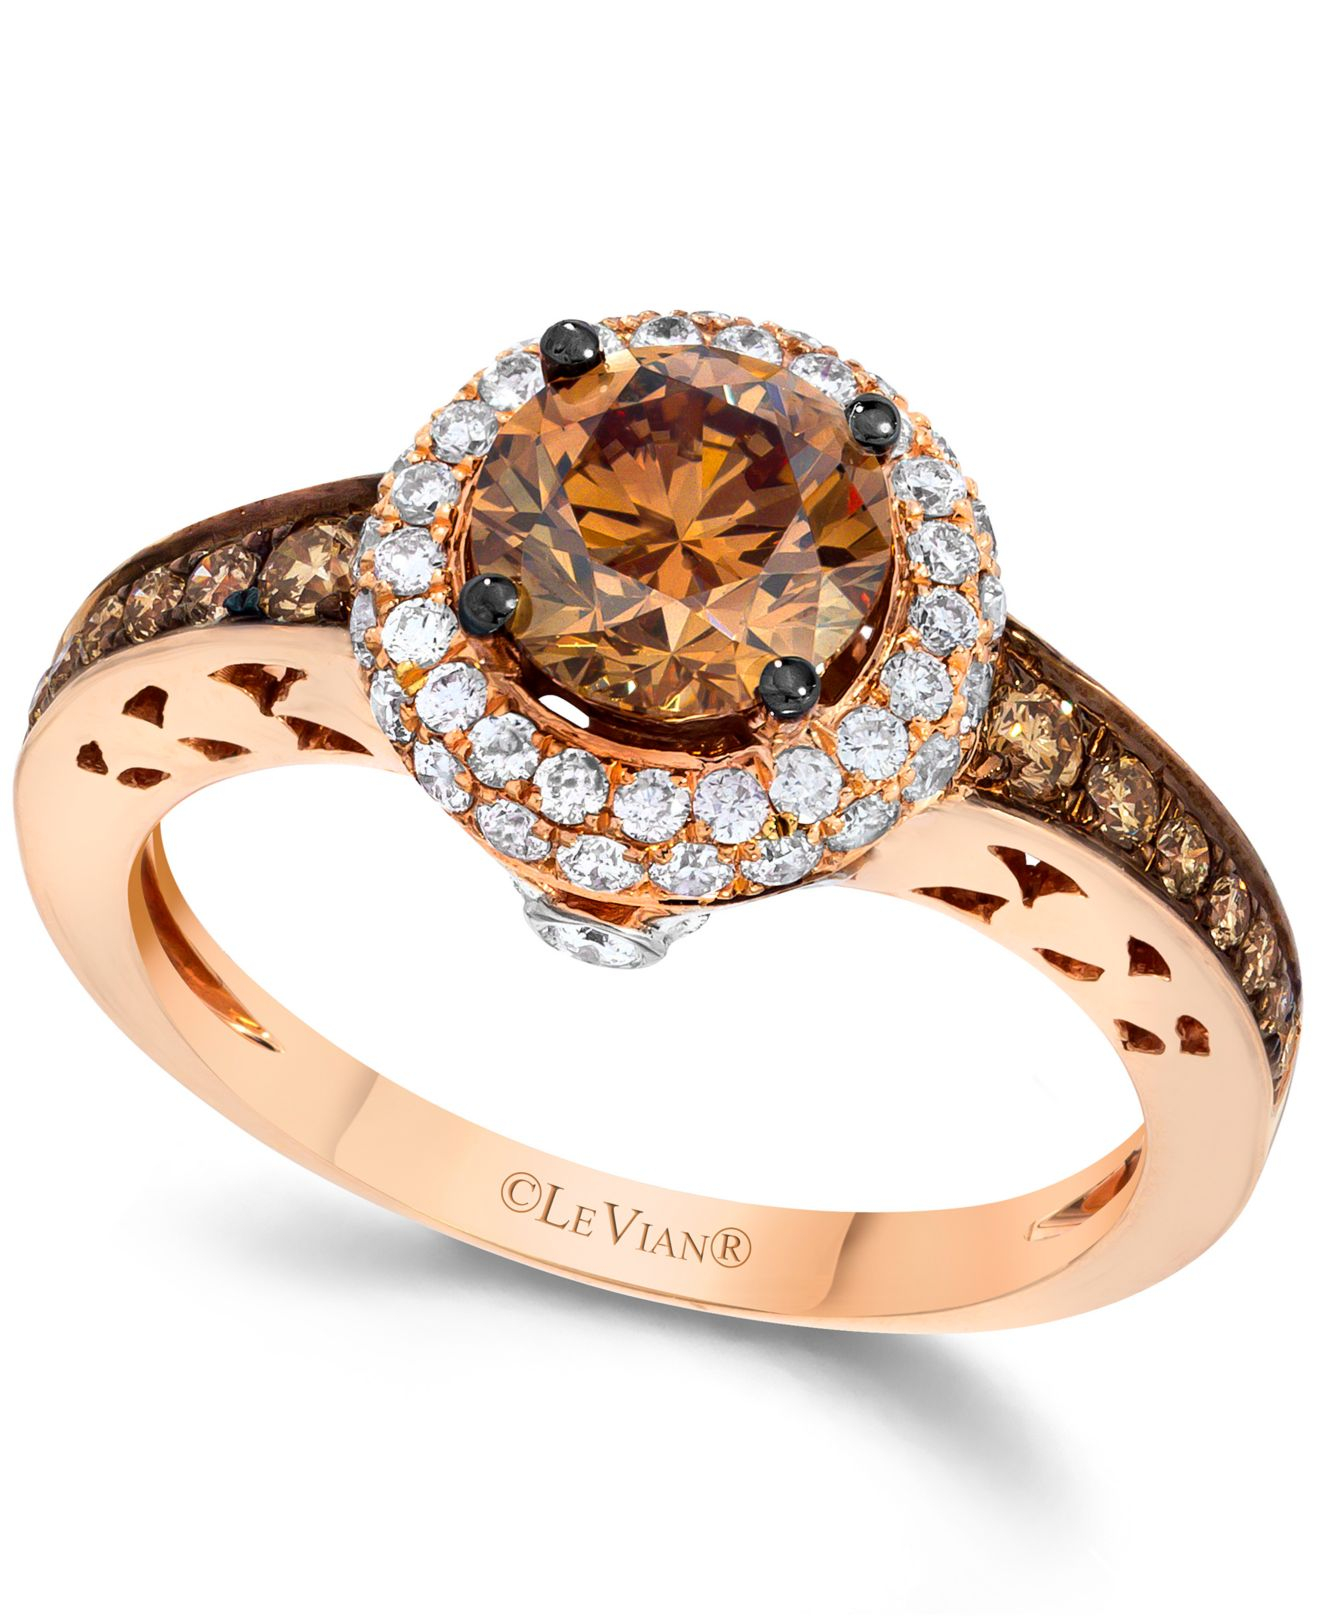 Le vian Chocolate And White Diamond Engagement Ring In 14k Rose ...